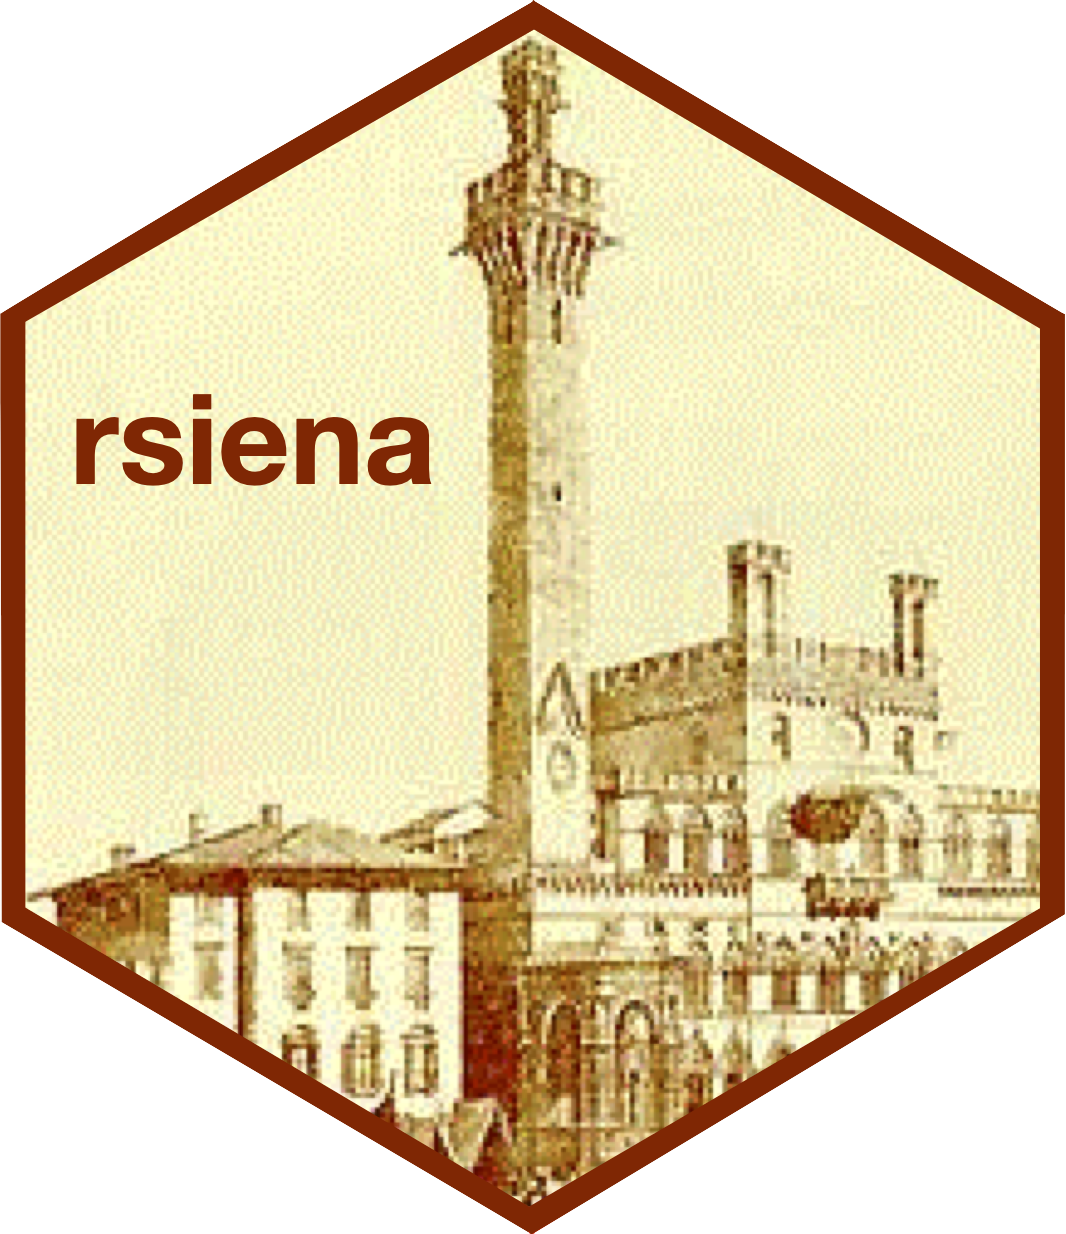 rsiena hex sticker